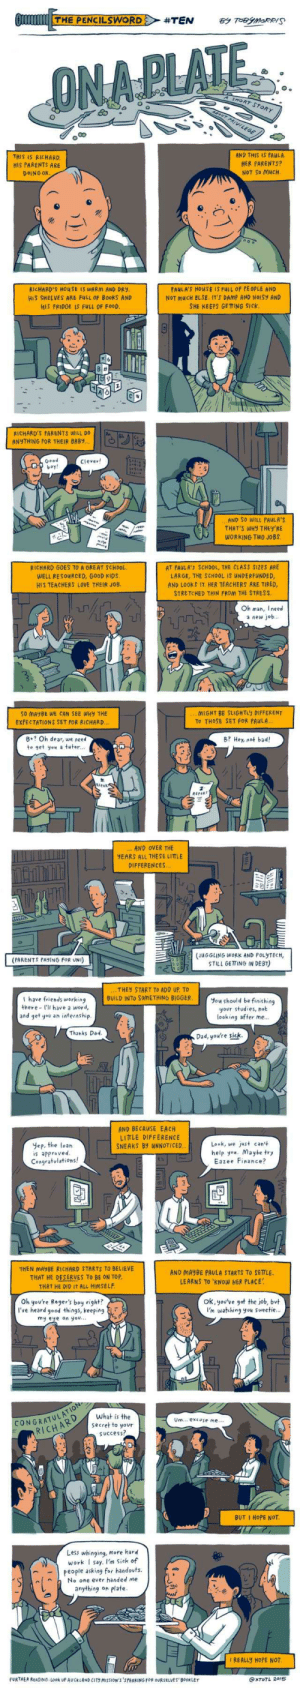 A super poignant comic I found, it's in a of my favorites now: Q THE PENCILSWORD  #TEN  BY TOBYMORRIS  ONA PLATE  SHORT STORY  AROUT PRIVILEGE  AND THIS IS PAULA.  THIS IS RICHARD.  HER PARENTS?  NOT SO MUCH.  HIS PARENTS ARE  DOING OK.  PAULA'S HOUSE IS FULL OF PE OPLE AND  RICHARD'S HOU SE IS WARM AND DRY.  HIS SHELVES ARE FULL OF BookS AND  HIS FRIDGE IS FULL OF FOOD.  NOT MUCH ELSE. IT'S DAMP AND NOISY AND  SHE KEEPS GE TTING SICK.  RICHARD'S PARENTS WILL DO  ANYTHING FOR THEIR BABY..  Good  boy!  Clever!  AND SO WILL PAULA'S.  THAT'S WHY THEY'RE  WORKING TWO JOBS.  RICHARD GOES TO A OREAT SCHDOL.  WELL RESOURCED, GOOD KIDS.  HIS TEACHERS LOVE THEIR JOB.  AT PAULA'S SCHOOL, THE CLASS SIZES ARE  LARGE, THE SCHOOL IS UNDERFUNDED,  AND LOOKS IT. HER TEACHERS ARE TIRED,  STRETCHED THIN FROM THE STRESS.  Oh man, I need  a new job.  MIGHT BE SLIGH TLY DIFFERENT  To THOSE SET FOR PAULA..  SO MAYBE WE CAN SEE WHY THE  EXPECTATIONS SET FOR RICHARD...  8+? Oh dear, we need  B? Hey, not bad!  to get you a tutor..  itoR  REFRT  .. AND OVER THE  YEARS ALL THESE LITTLE  DIFFERENCES.  (JUGGLING WORK AND POLYTECH,  STILL GETTING IN DEBT)  (PARENTS PAYING FOR UNI)  THEY START TO ADD UP. TO  BUILD INTO SOMETHING BIGGER.  I have friends working  You should be finishing  your studies, not  looking after me..  there - I'Il have a word,  and get you an internship.  Thanks Dad.  Dad, you're sick.  AND BECAUSE EACH  LITTLE DIFFERENCE  SNEAKS BY UNNOTICED.  Look, we just can't  help you. Maybe try  Eazee Finance?  Yep, the loan  is approved.  Congratulations!  THEN MAYBE RICHARD STARTS TO BELIEVE  THAT HE DESERVES TO BE ON TOP.  THAT HE DID IT ALL HIMSELF.  AND MAYBE PAULA STARTS TO SETTLE.  LEARNS TO 'KNOW HER PLACE  ok, you've got the job, but  I'm watching you sweetie.  Oh you're Roger's boy right?  I've heard good things, keeping  my eye on you...  CONGRATULATION  RICHARD  What is the  Um... excuse me...  secret to your  Success?  BUT I HOPE NOT.  Less whinging, more hard  work I sa